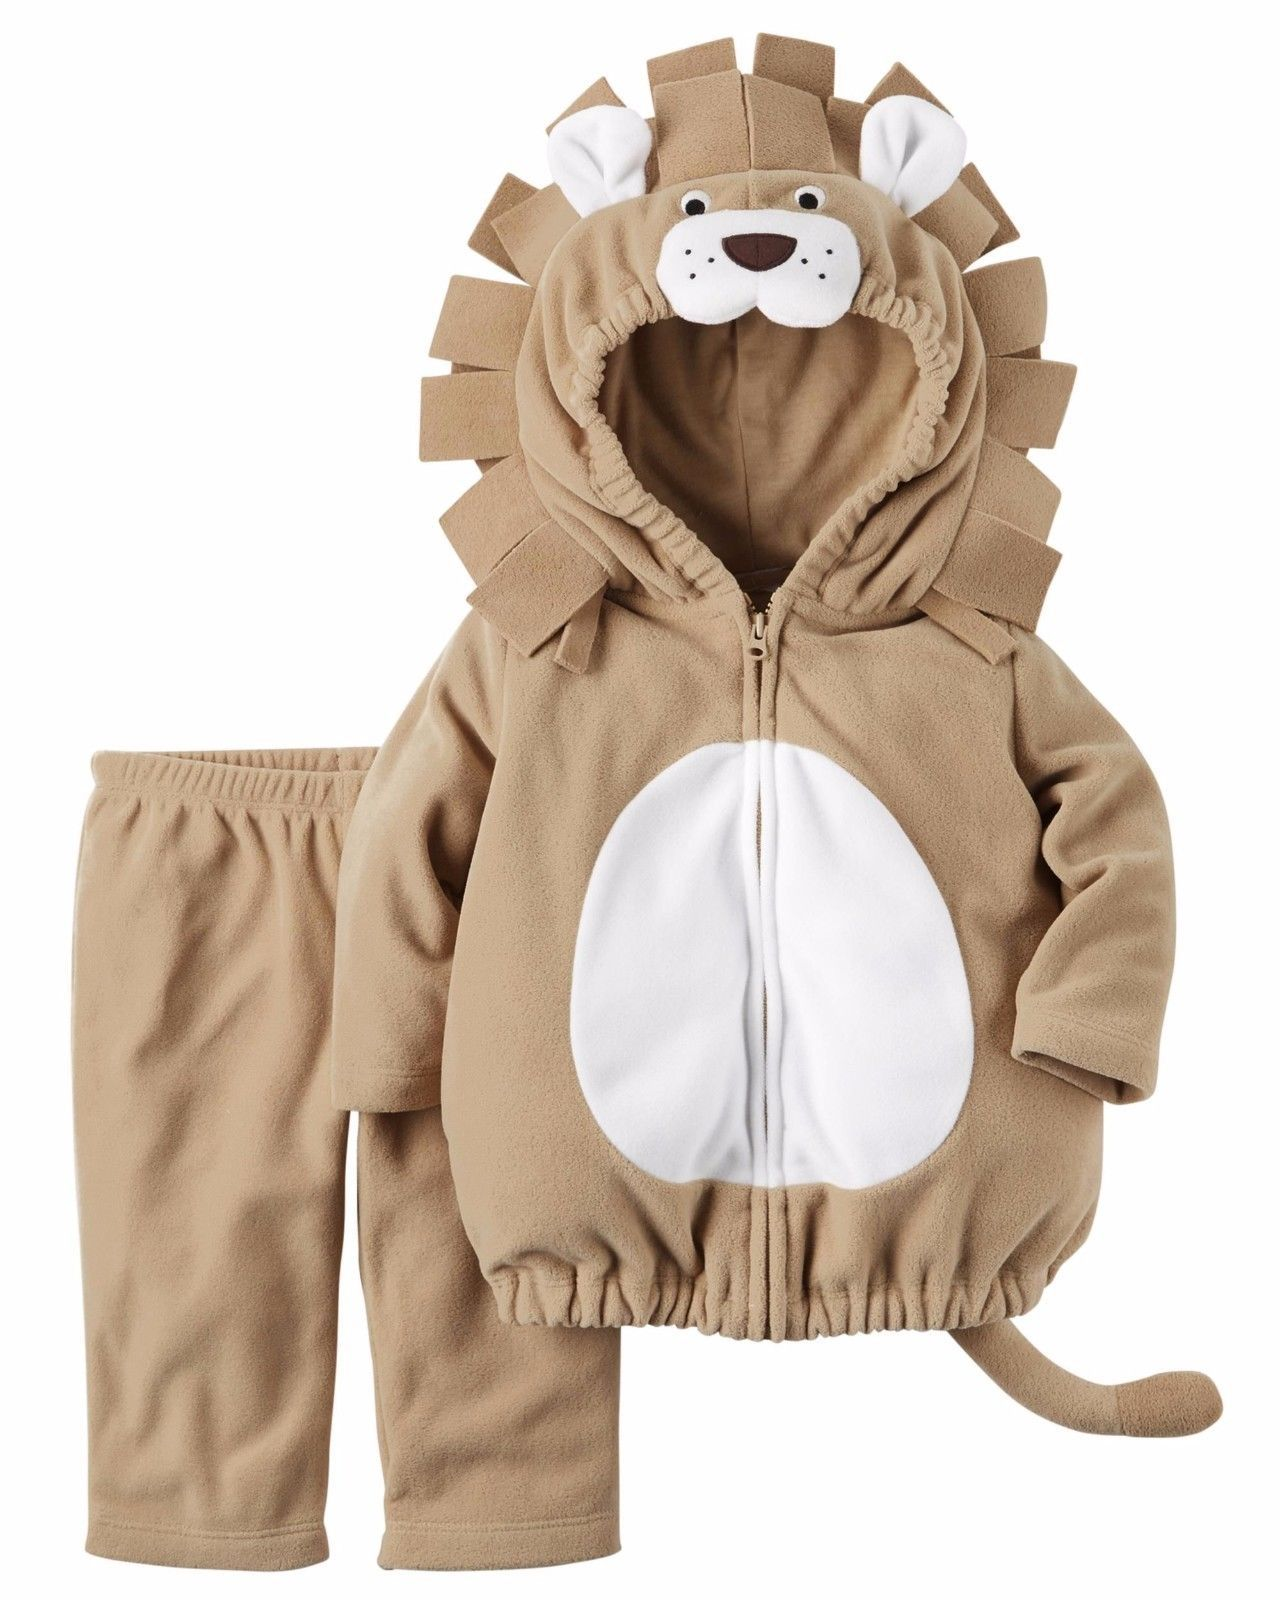 NEW NWT Carters Girls or Boys Lion Halloween Costume Size 6-9 Months